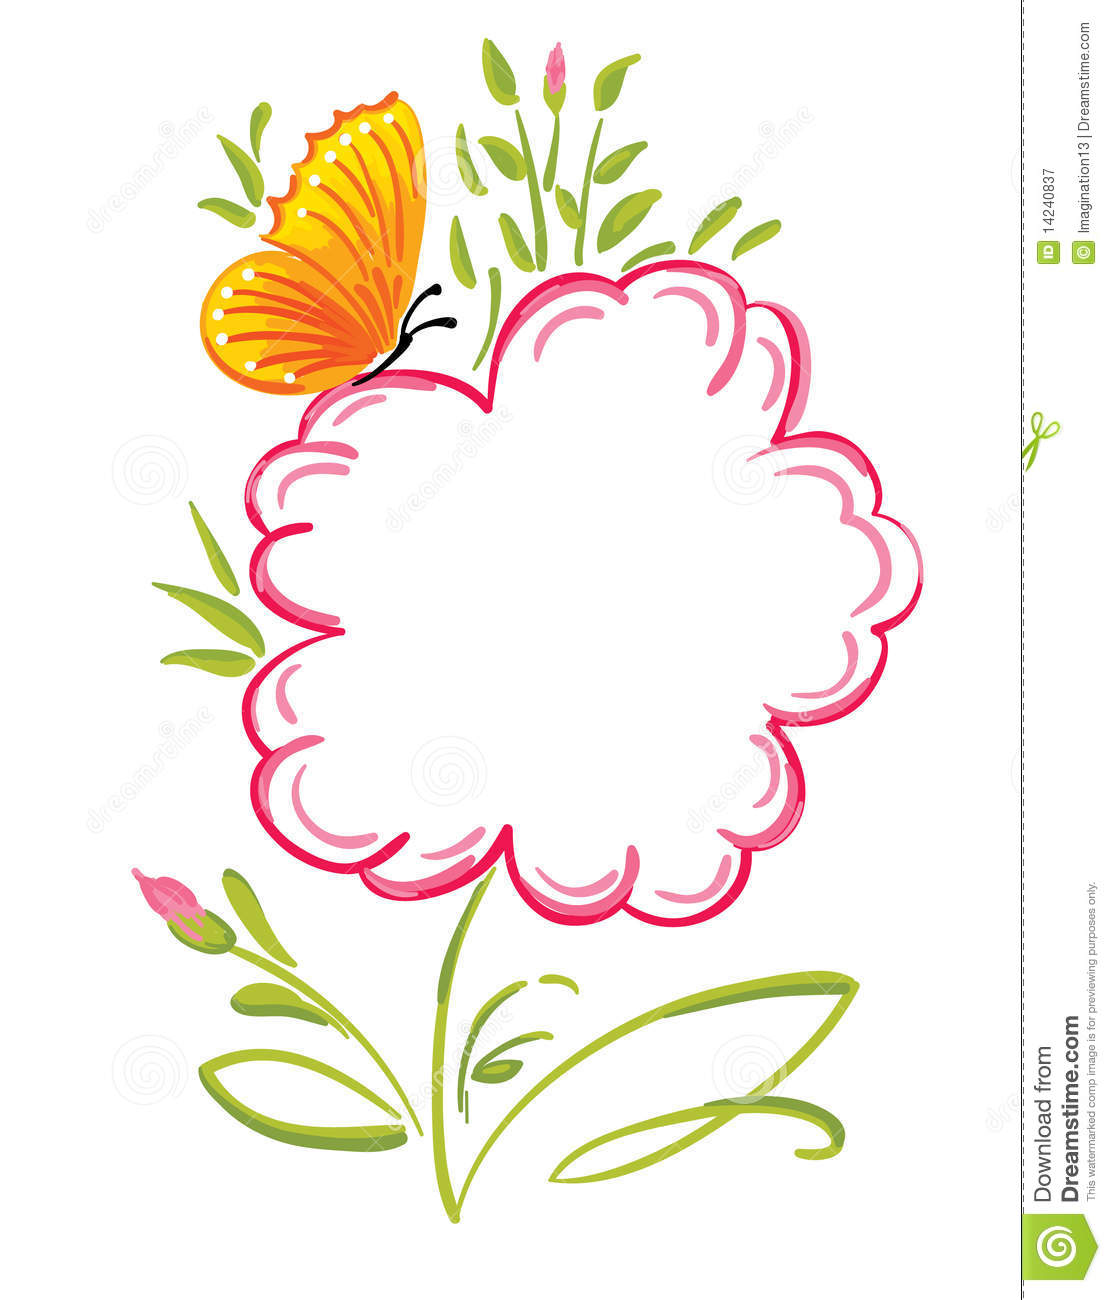 Flower Greetings Royalty Free Stock Photography